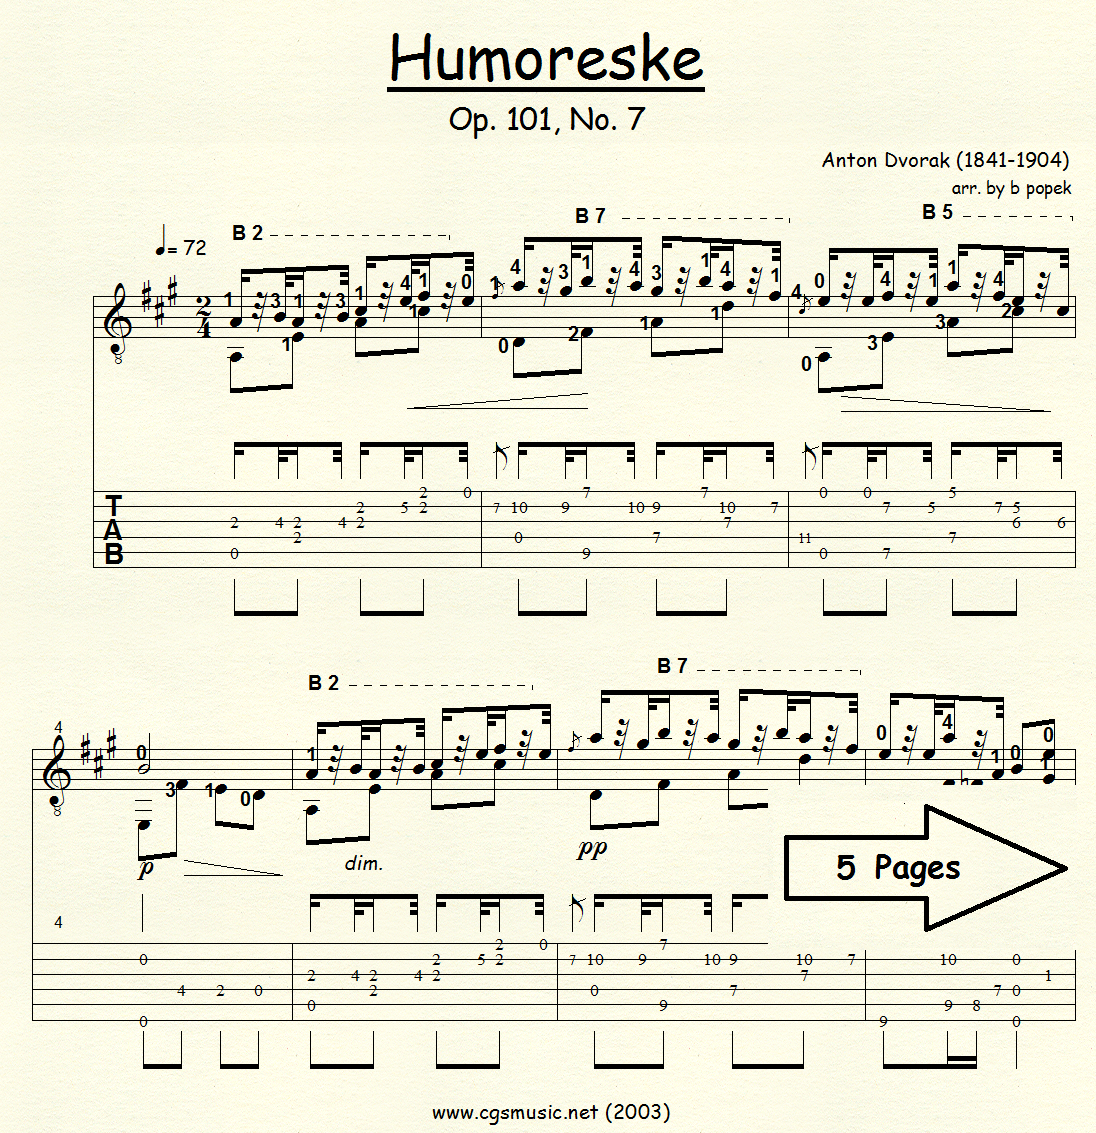 Humoreske Op.101, No. 7 (Dvorak) for Classical Guitar in Tablature